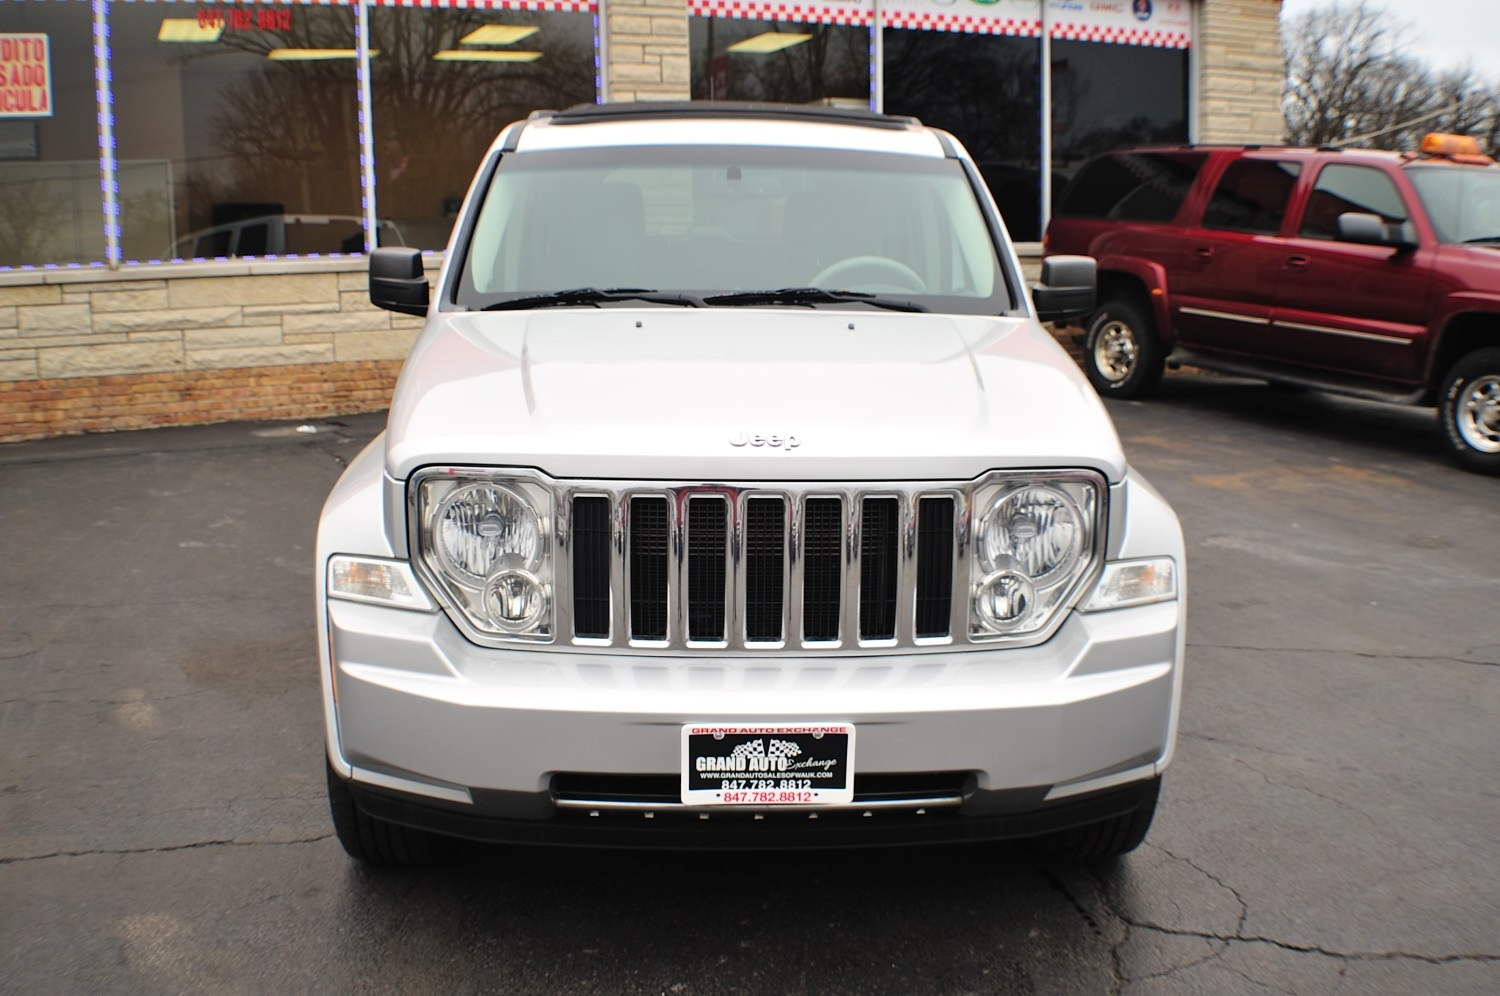 2008 Jeep Liberty Silver 4x4 Used car SUV Sale Gurnee Kenosha Mchenry Chicago Illinois